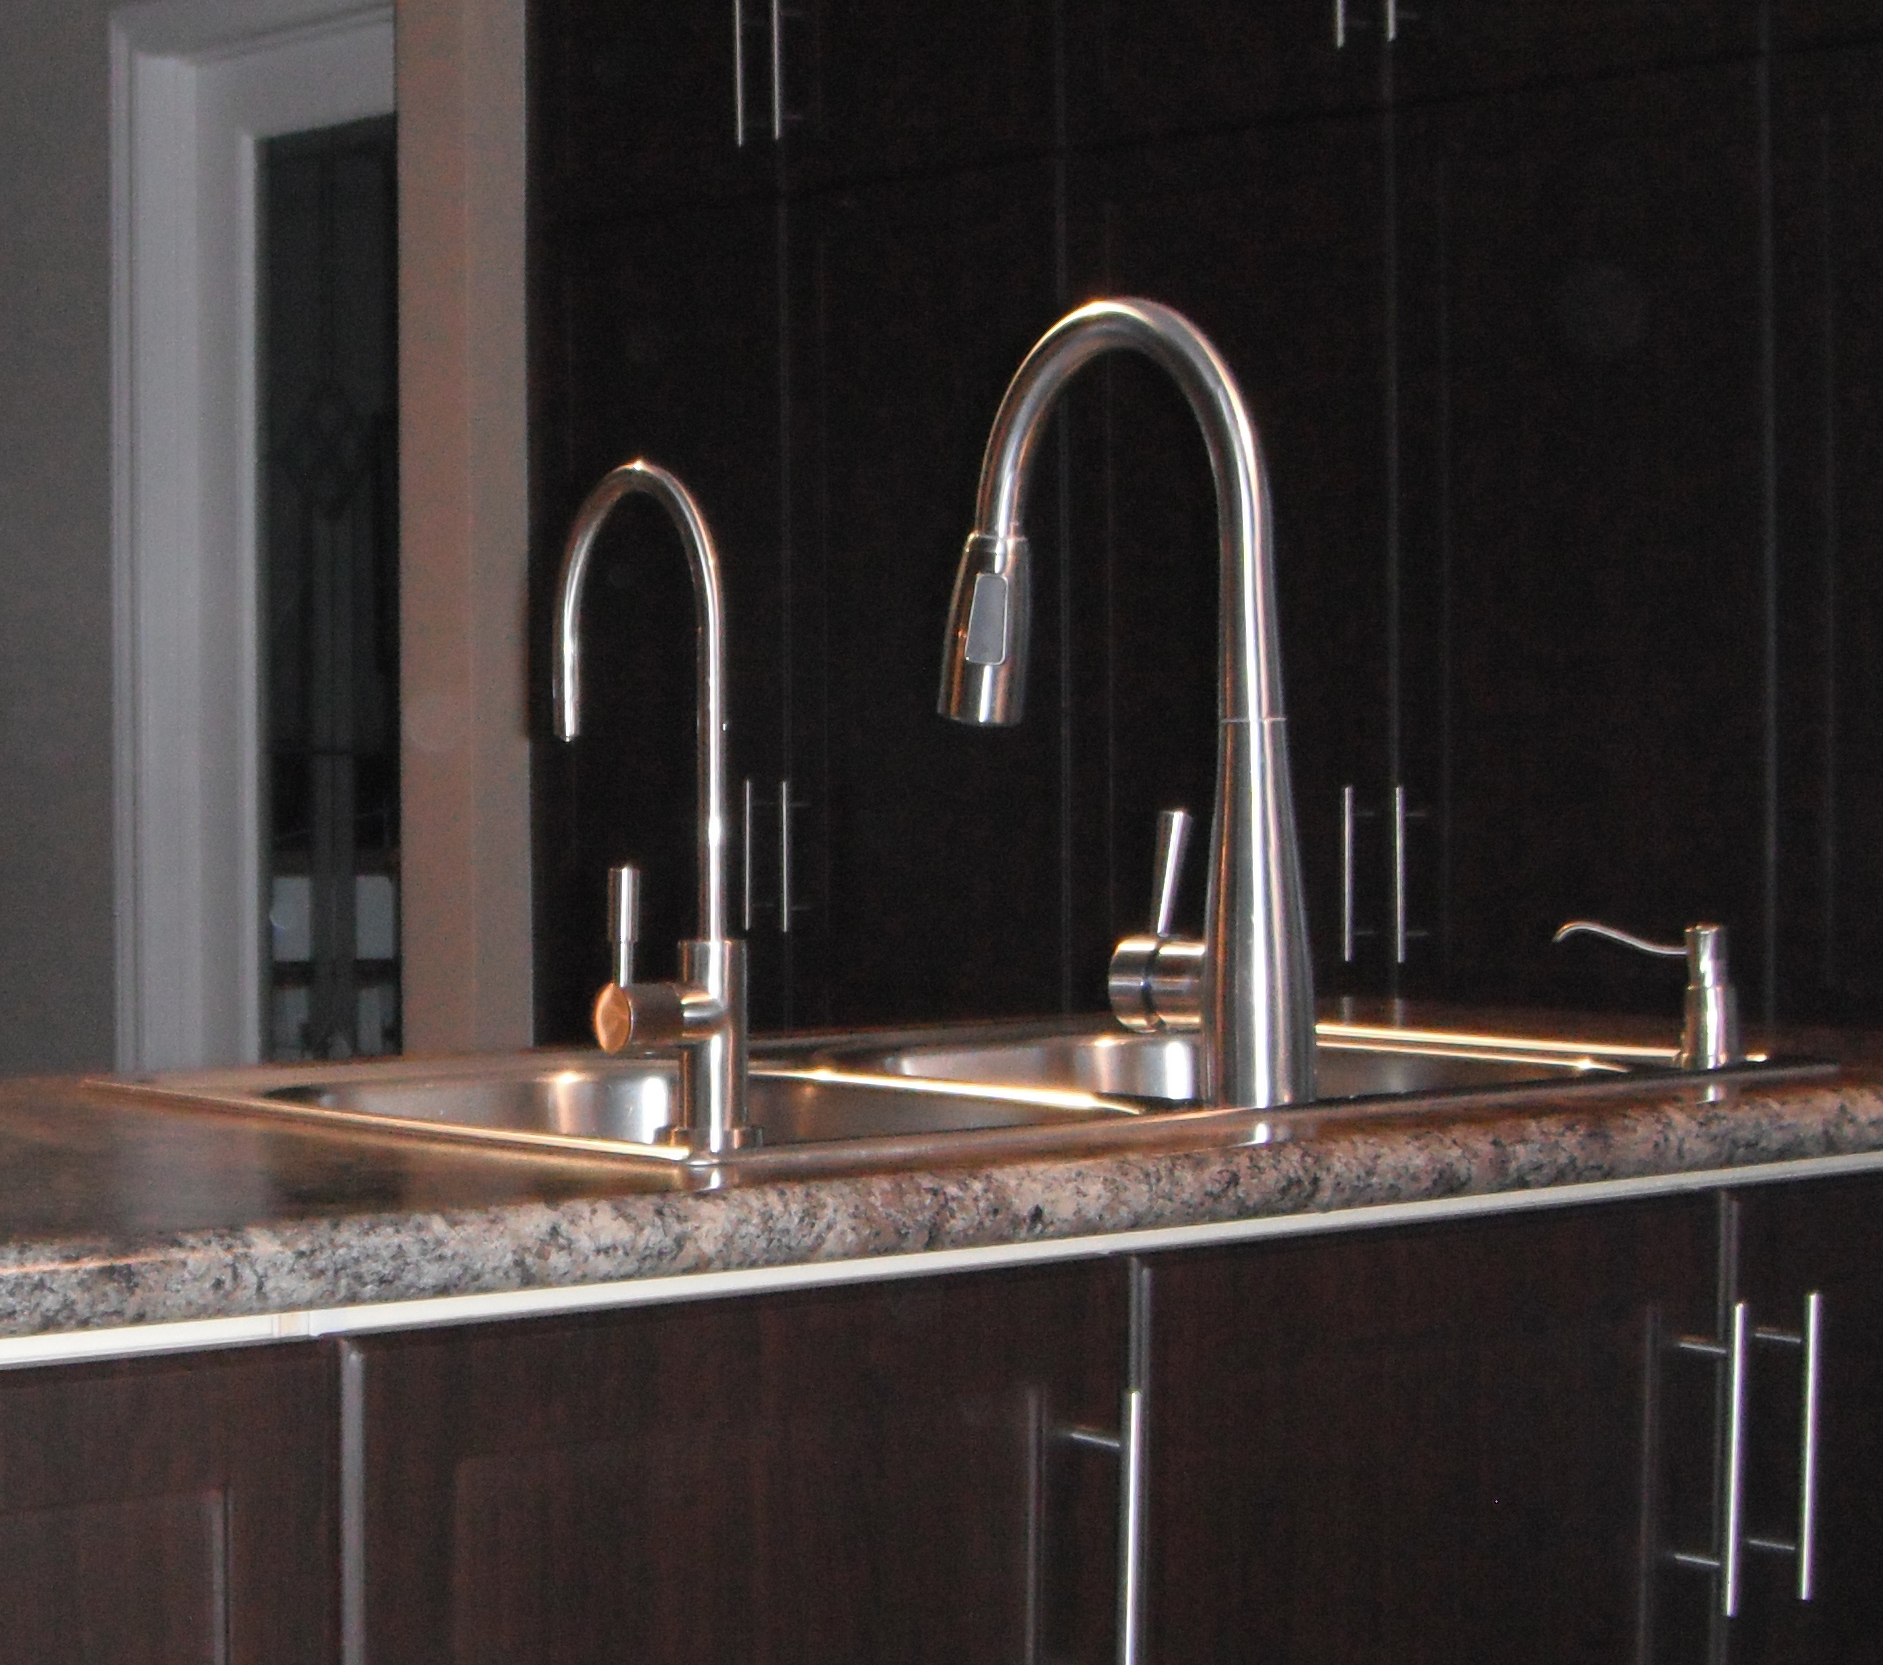 Matching Kitchen Water Filter Faucet Image